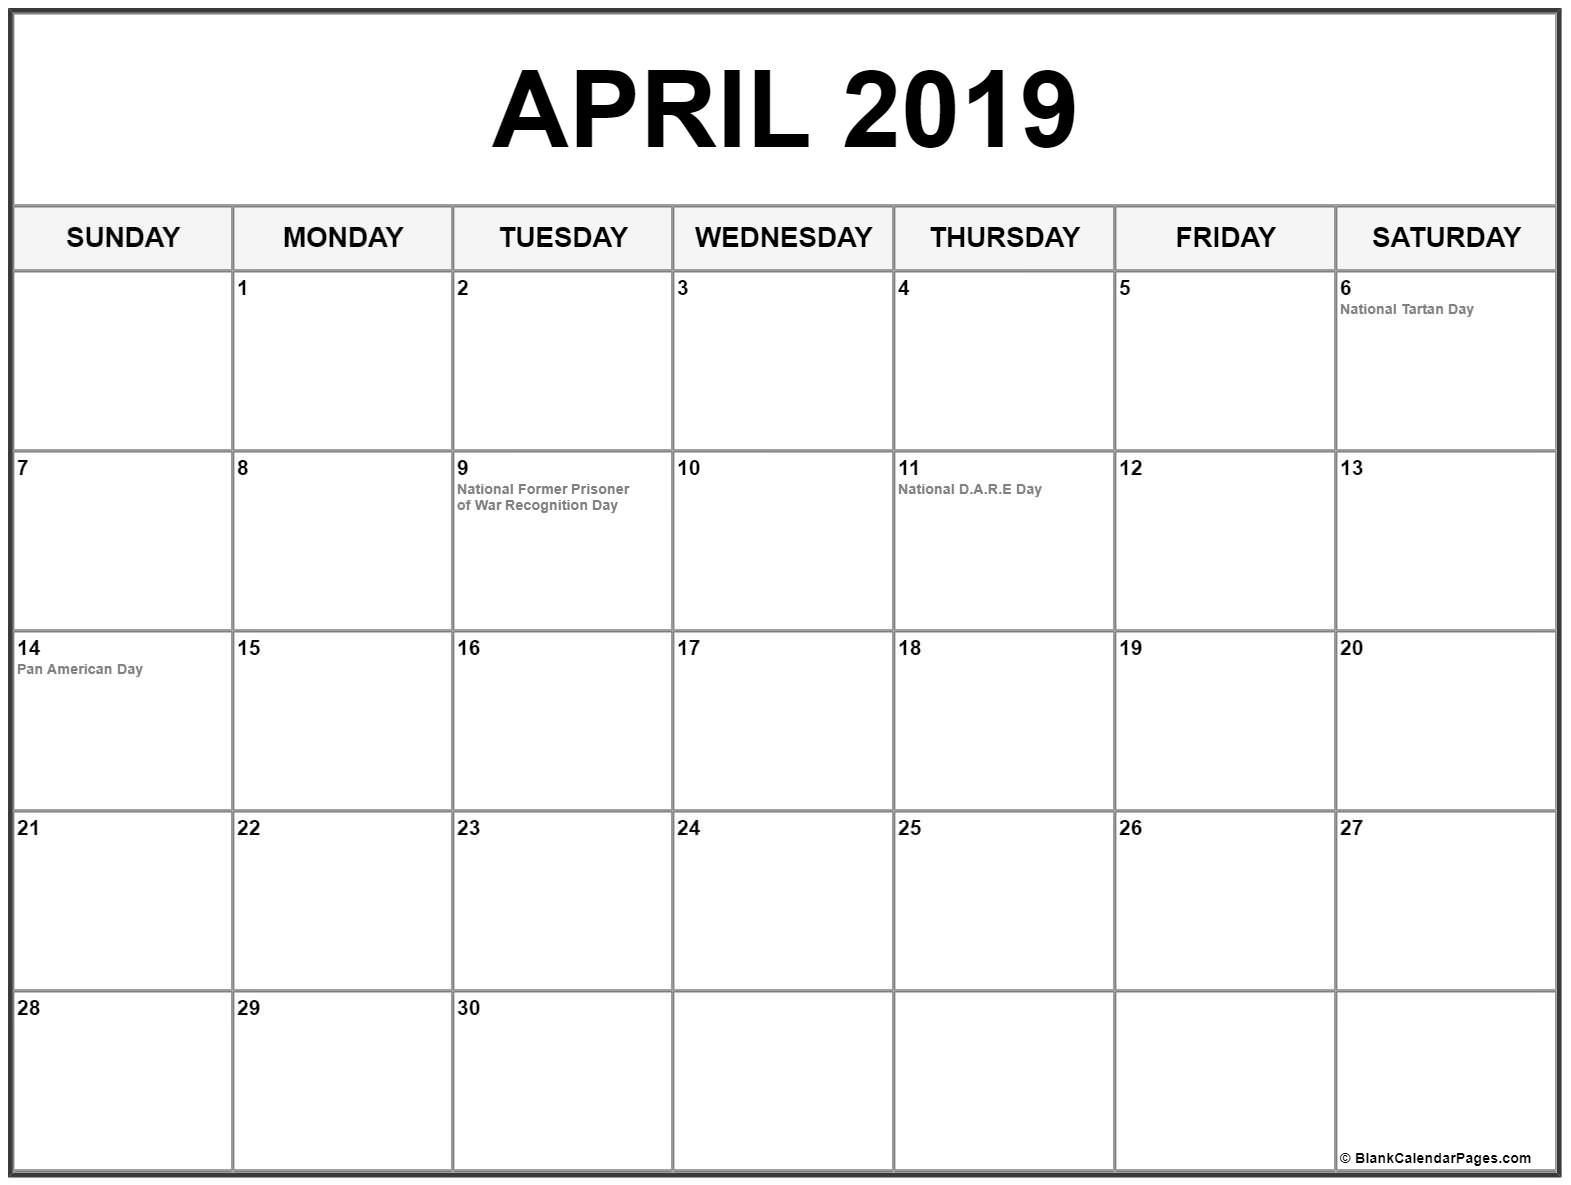 April 2019 Calendar Philippines Calendar 2019 With Holidays